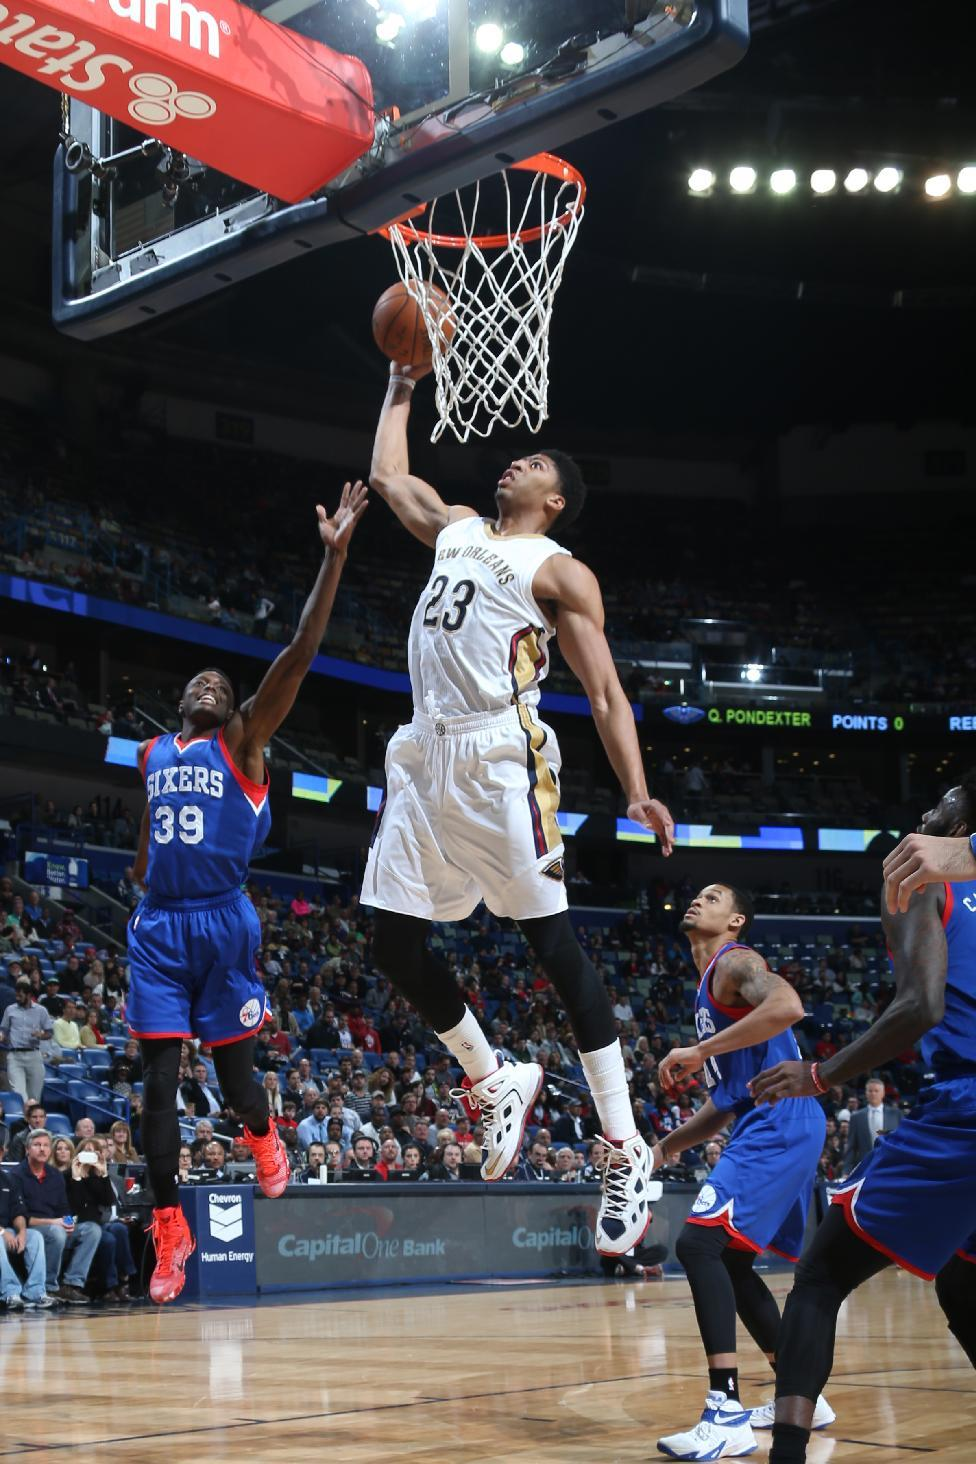 Davis' dunks aplenty lead Pelicans past 76ers, 99-74